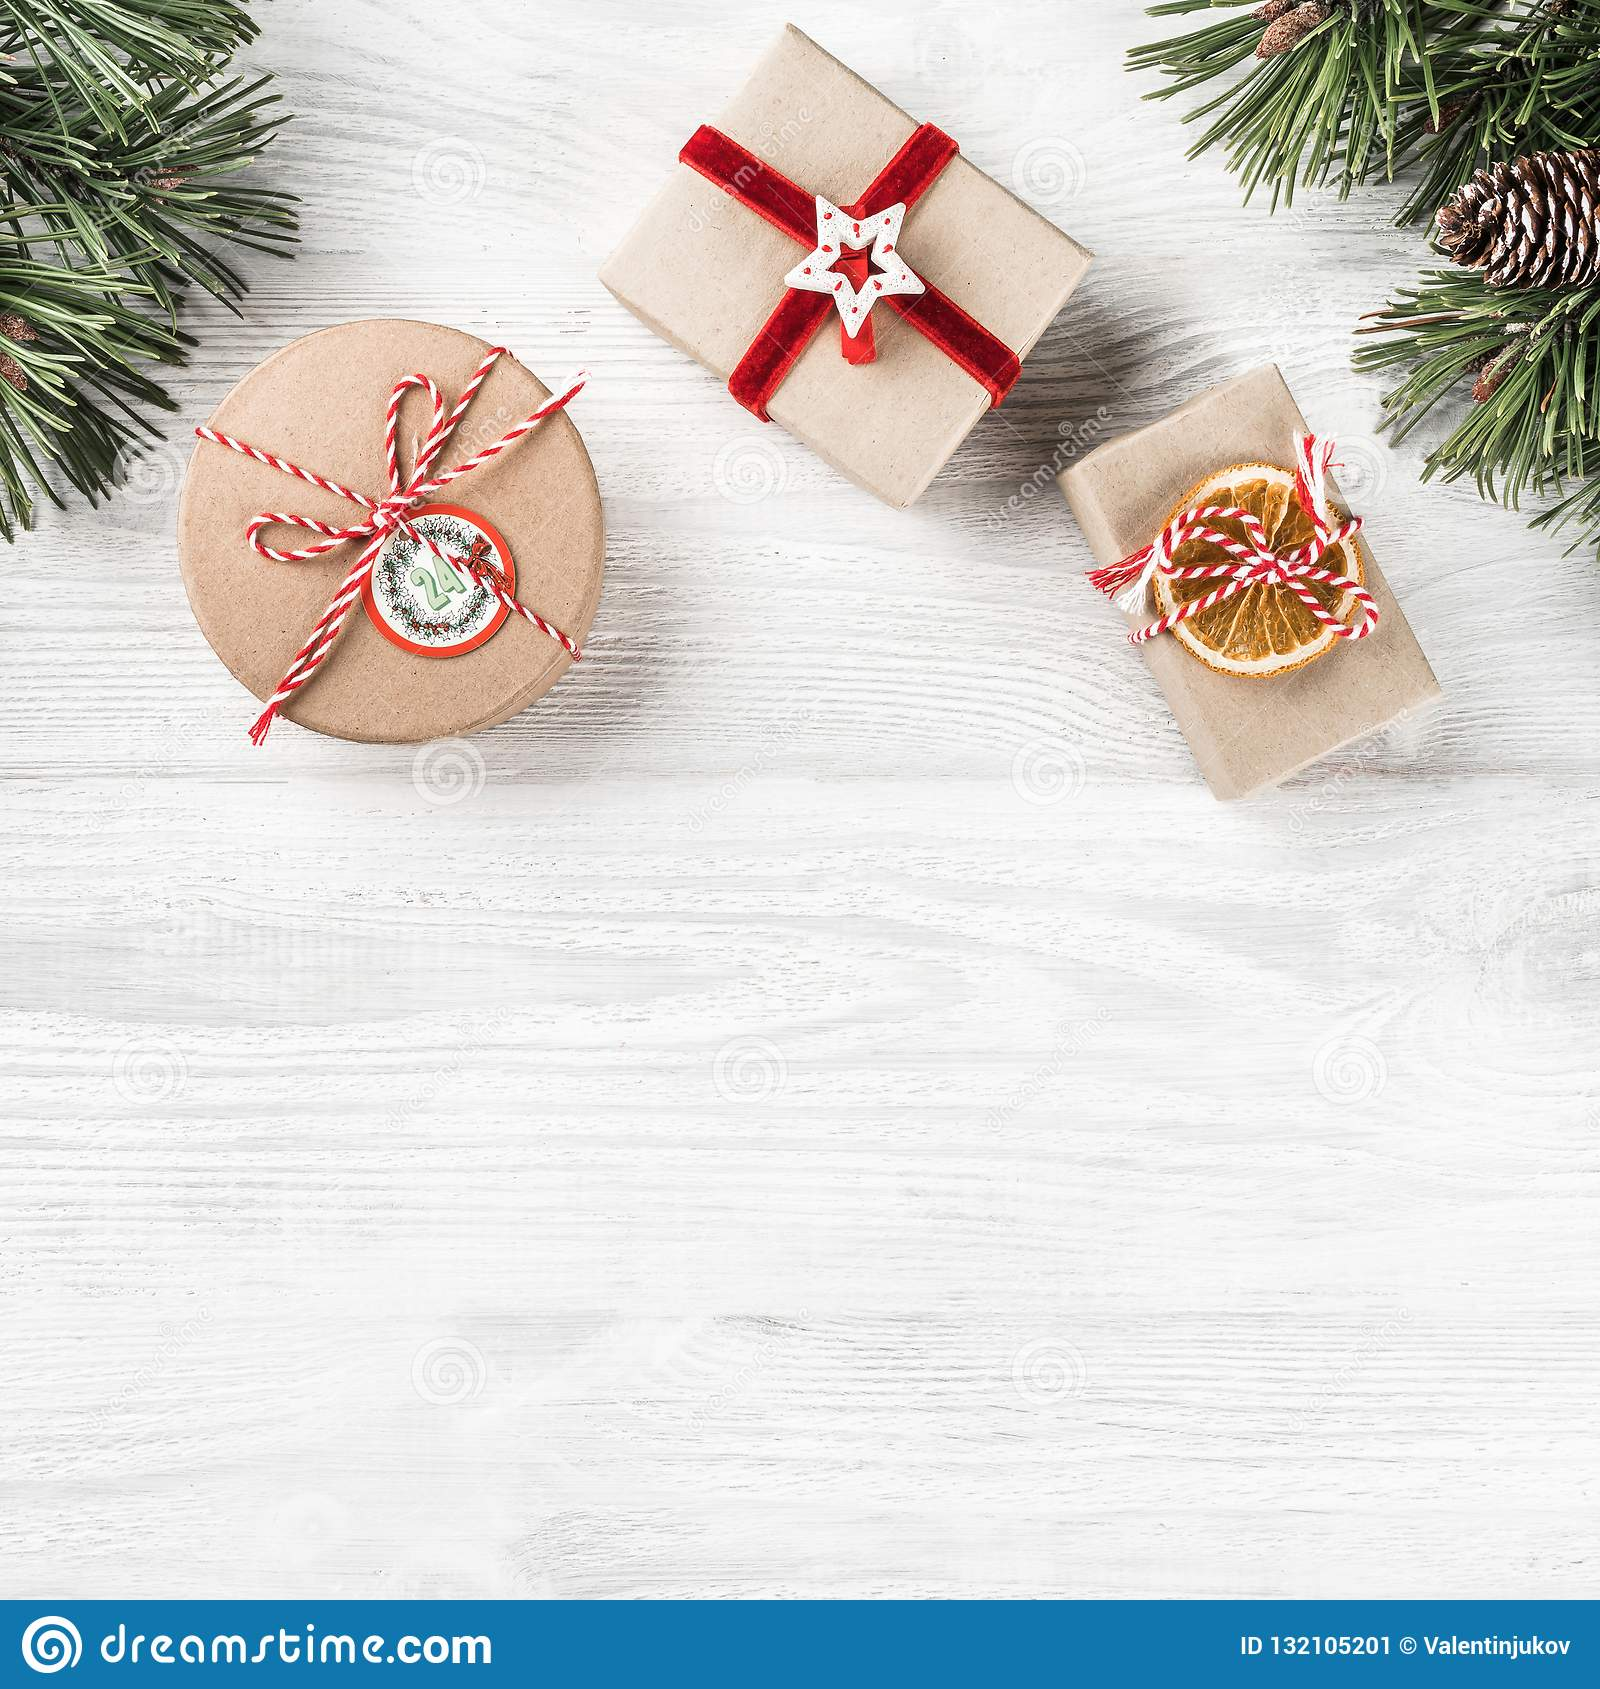 Christmas gift boxes on white wooden background with Fir branches, pine cones. Xmas and Happy New Year theme.